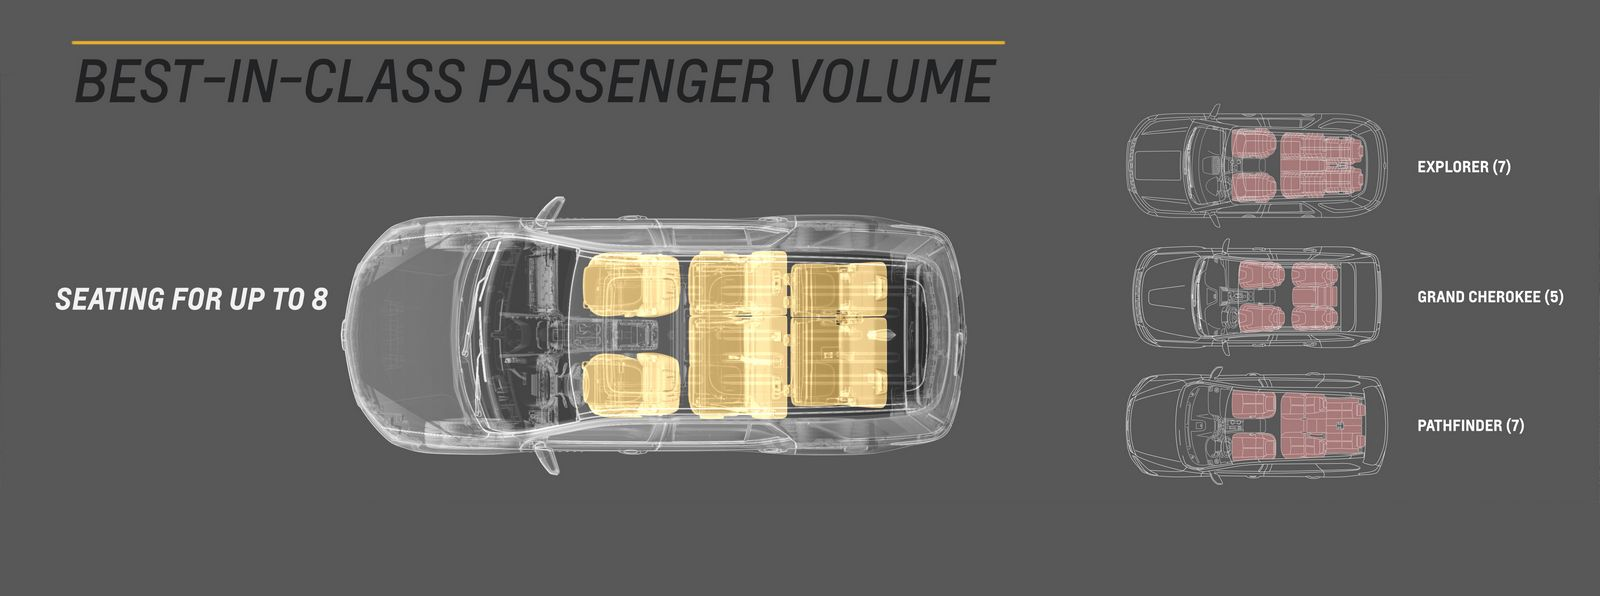 Built for style and purpose – inside and out, the completely redesigned 2018 Traverse offers technologies to help keep passengers of all ages and lifestyles comfortable and connected. Traverse will deliver what is expected to be best-in-class third-row legroom, maximum cargo room and passenger volume with an enhanced roster of available active safety features.